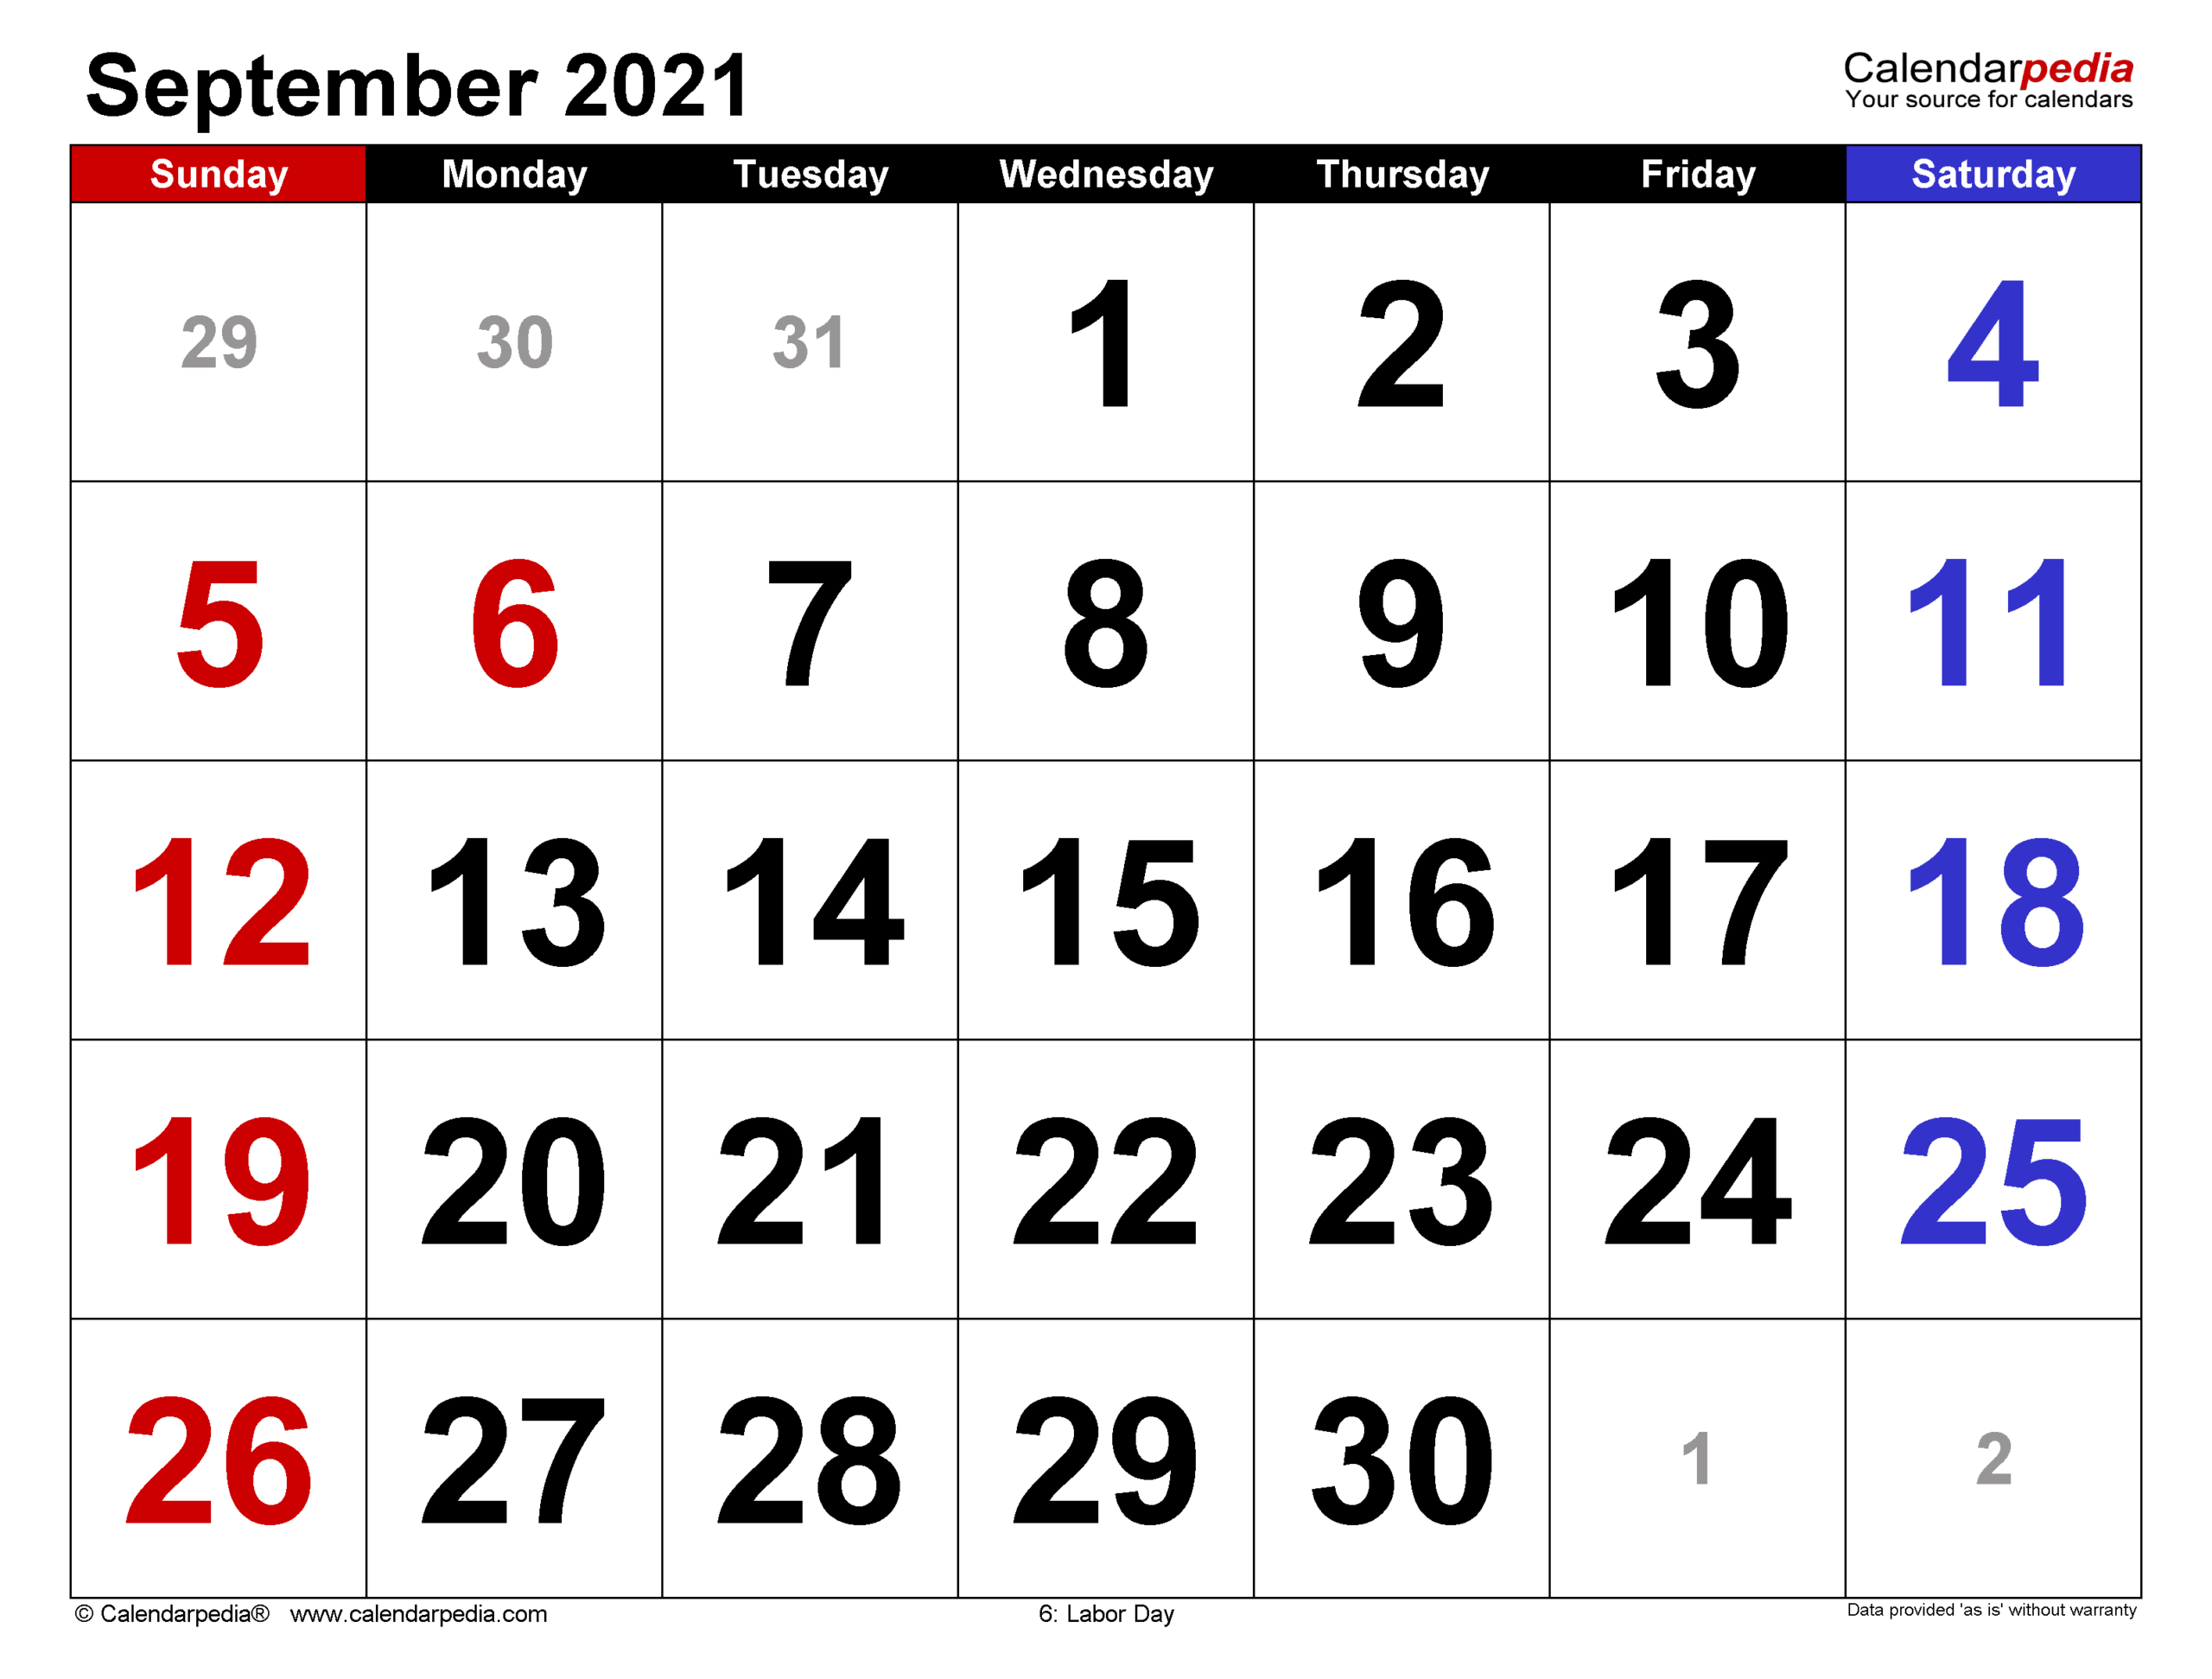 September 2021 Calendar | Templates For Word, Excel And Pdf within September 2021 Calendar Printable